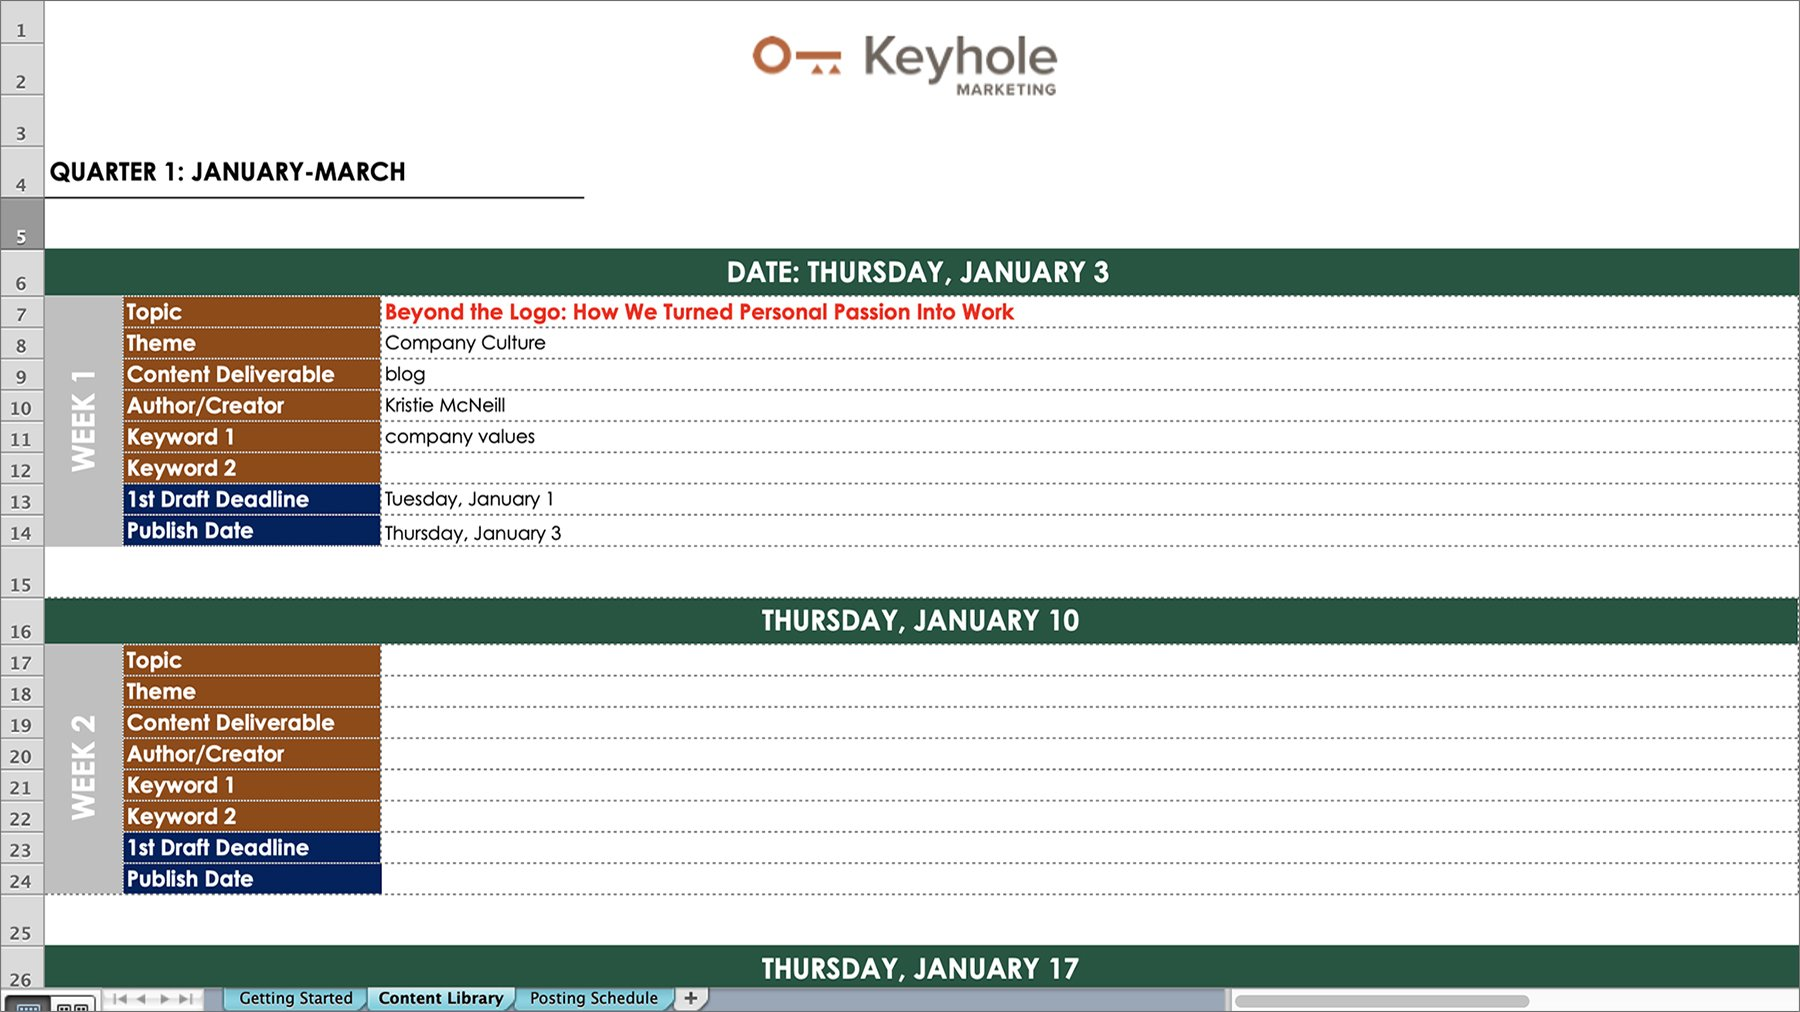 Keyhole Marketing - Content Calendar - Template